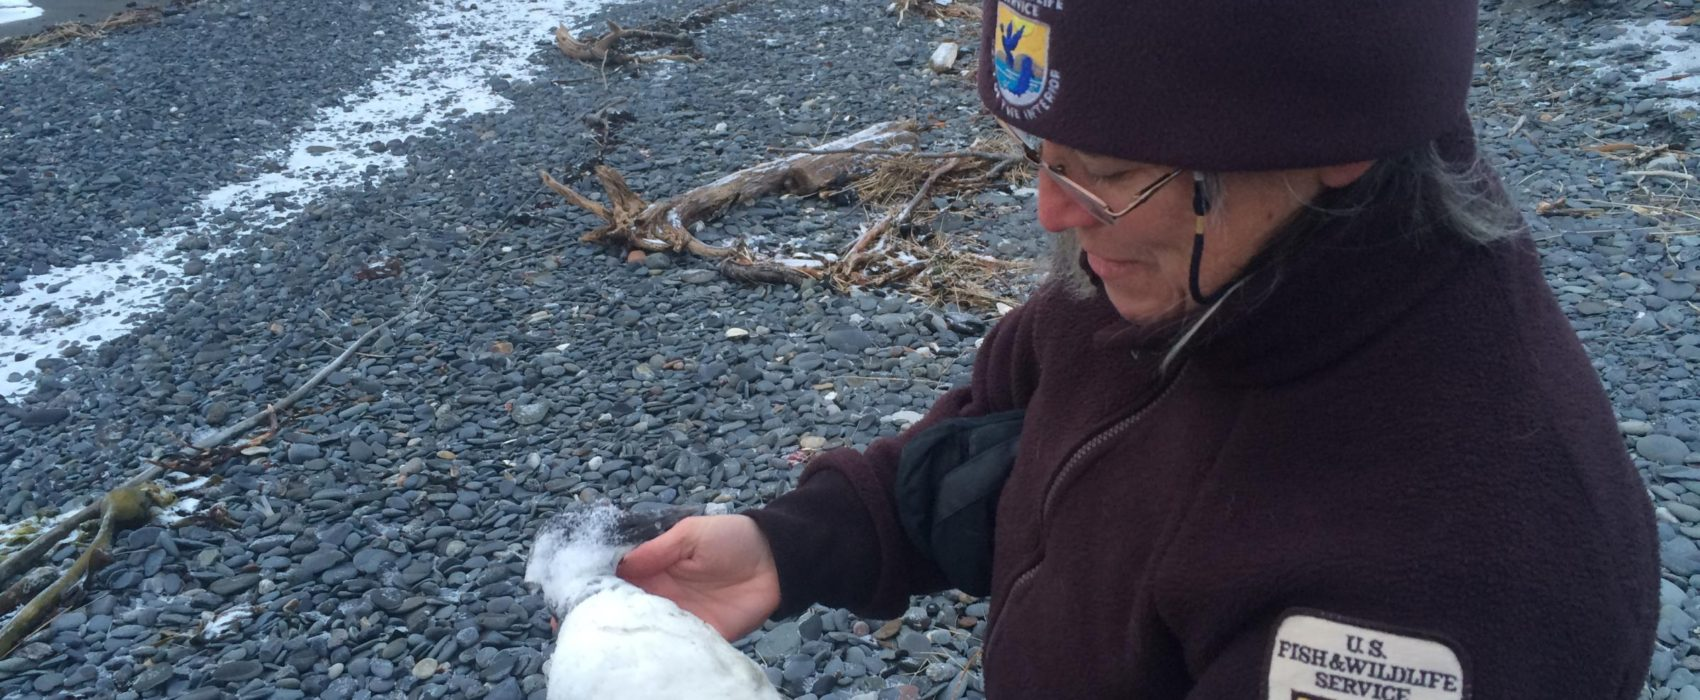 Wildlife Biologist Leslie Slater holds one of about a dozen dead Common Murres found along a short stretch of beach at the Spit in Homer Tuesday, Dec. 22. (Photo by Daysha Eaton/KBBI)